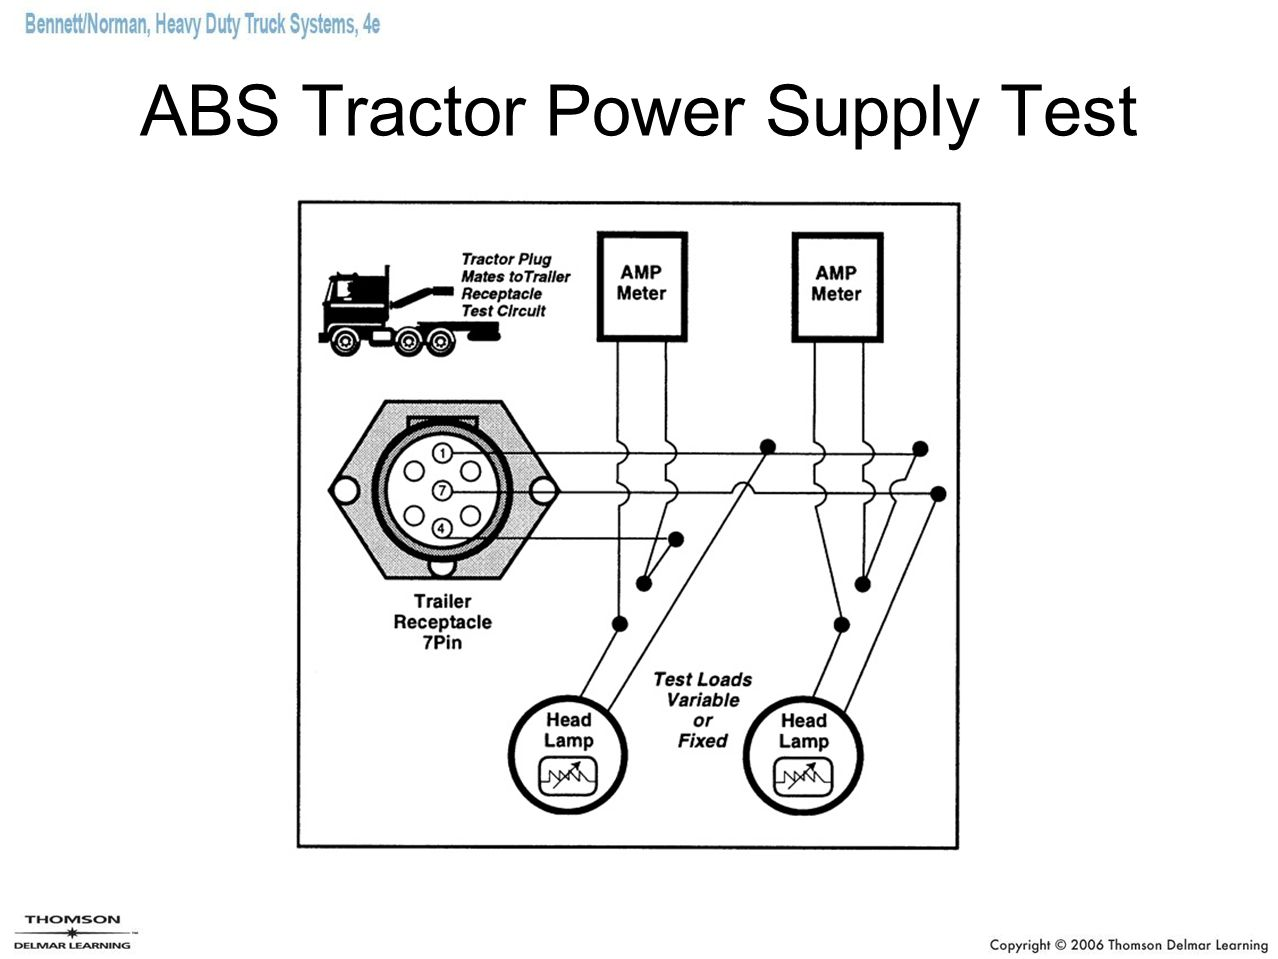 ABS Tractor Power Supply Test